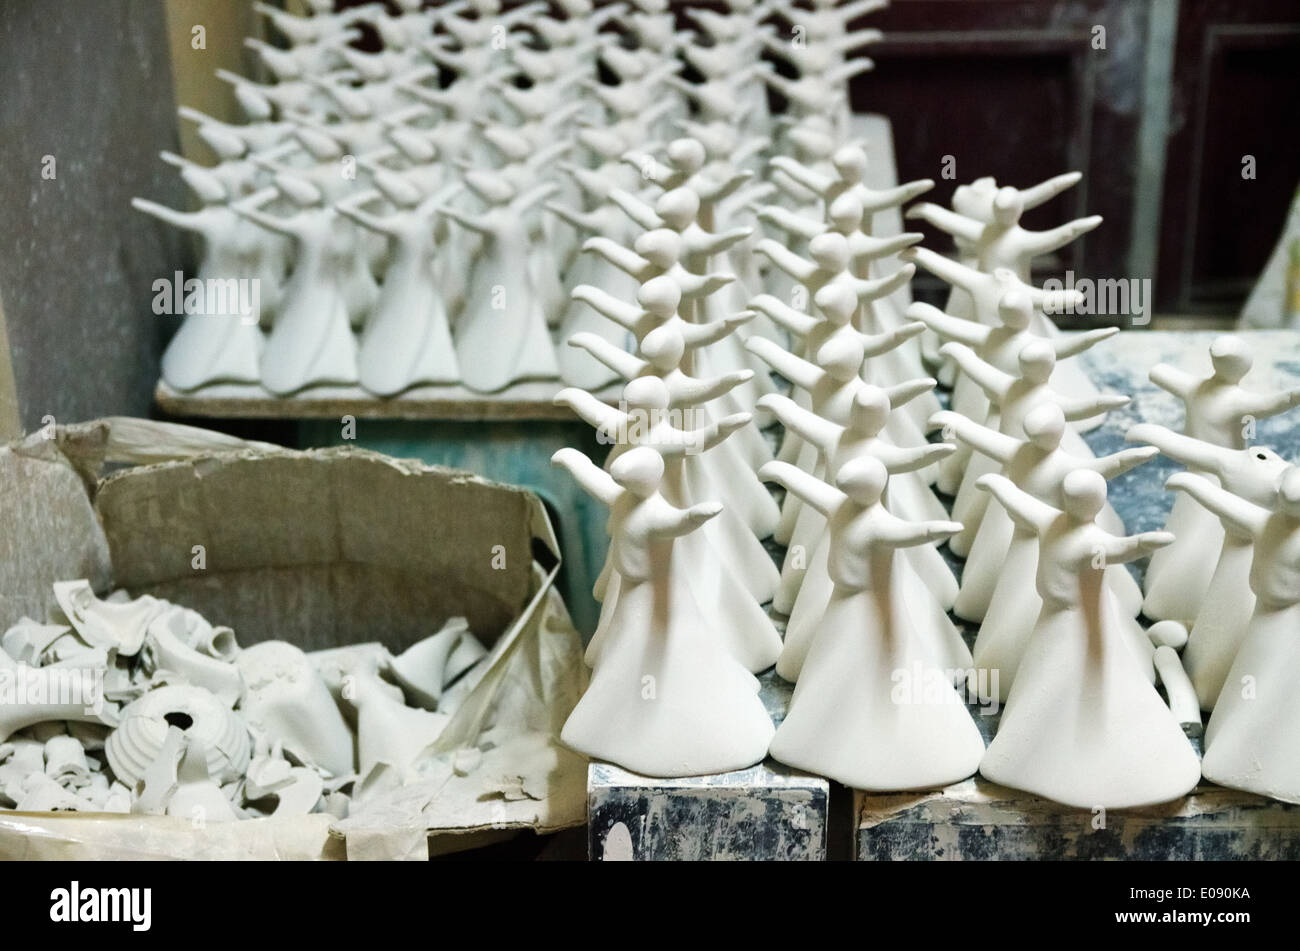 Porcelain souvenir dervishes before roasting. Family pottery workshop in Konya, Turkey - Stock Image